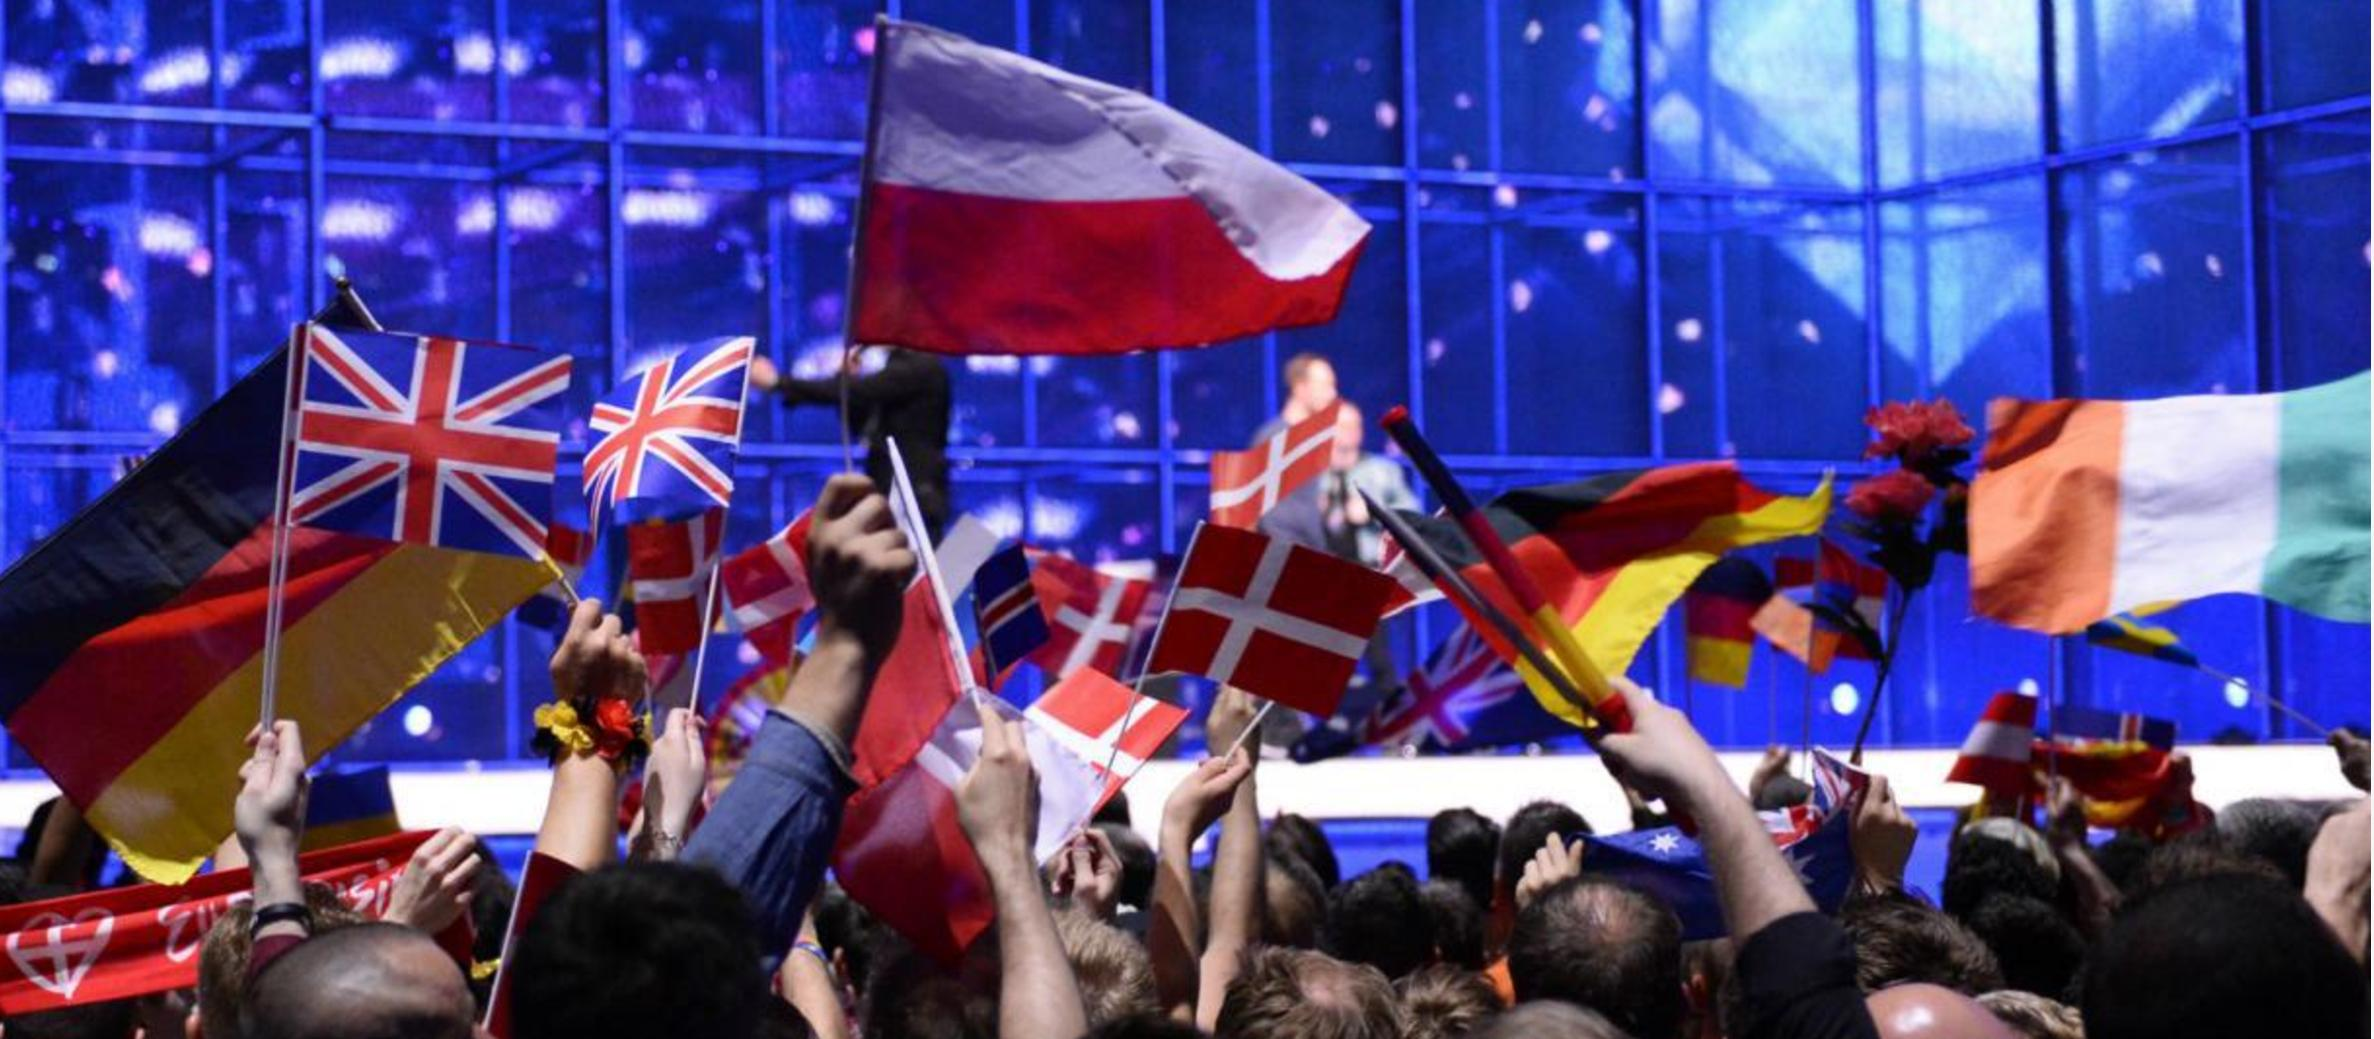 Eurovision's banning of Palestinian flag sparks anti-Semitic backlash